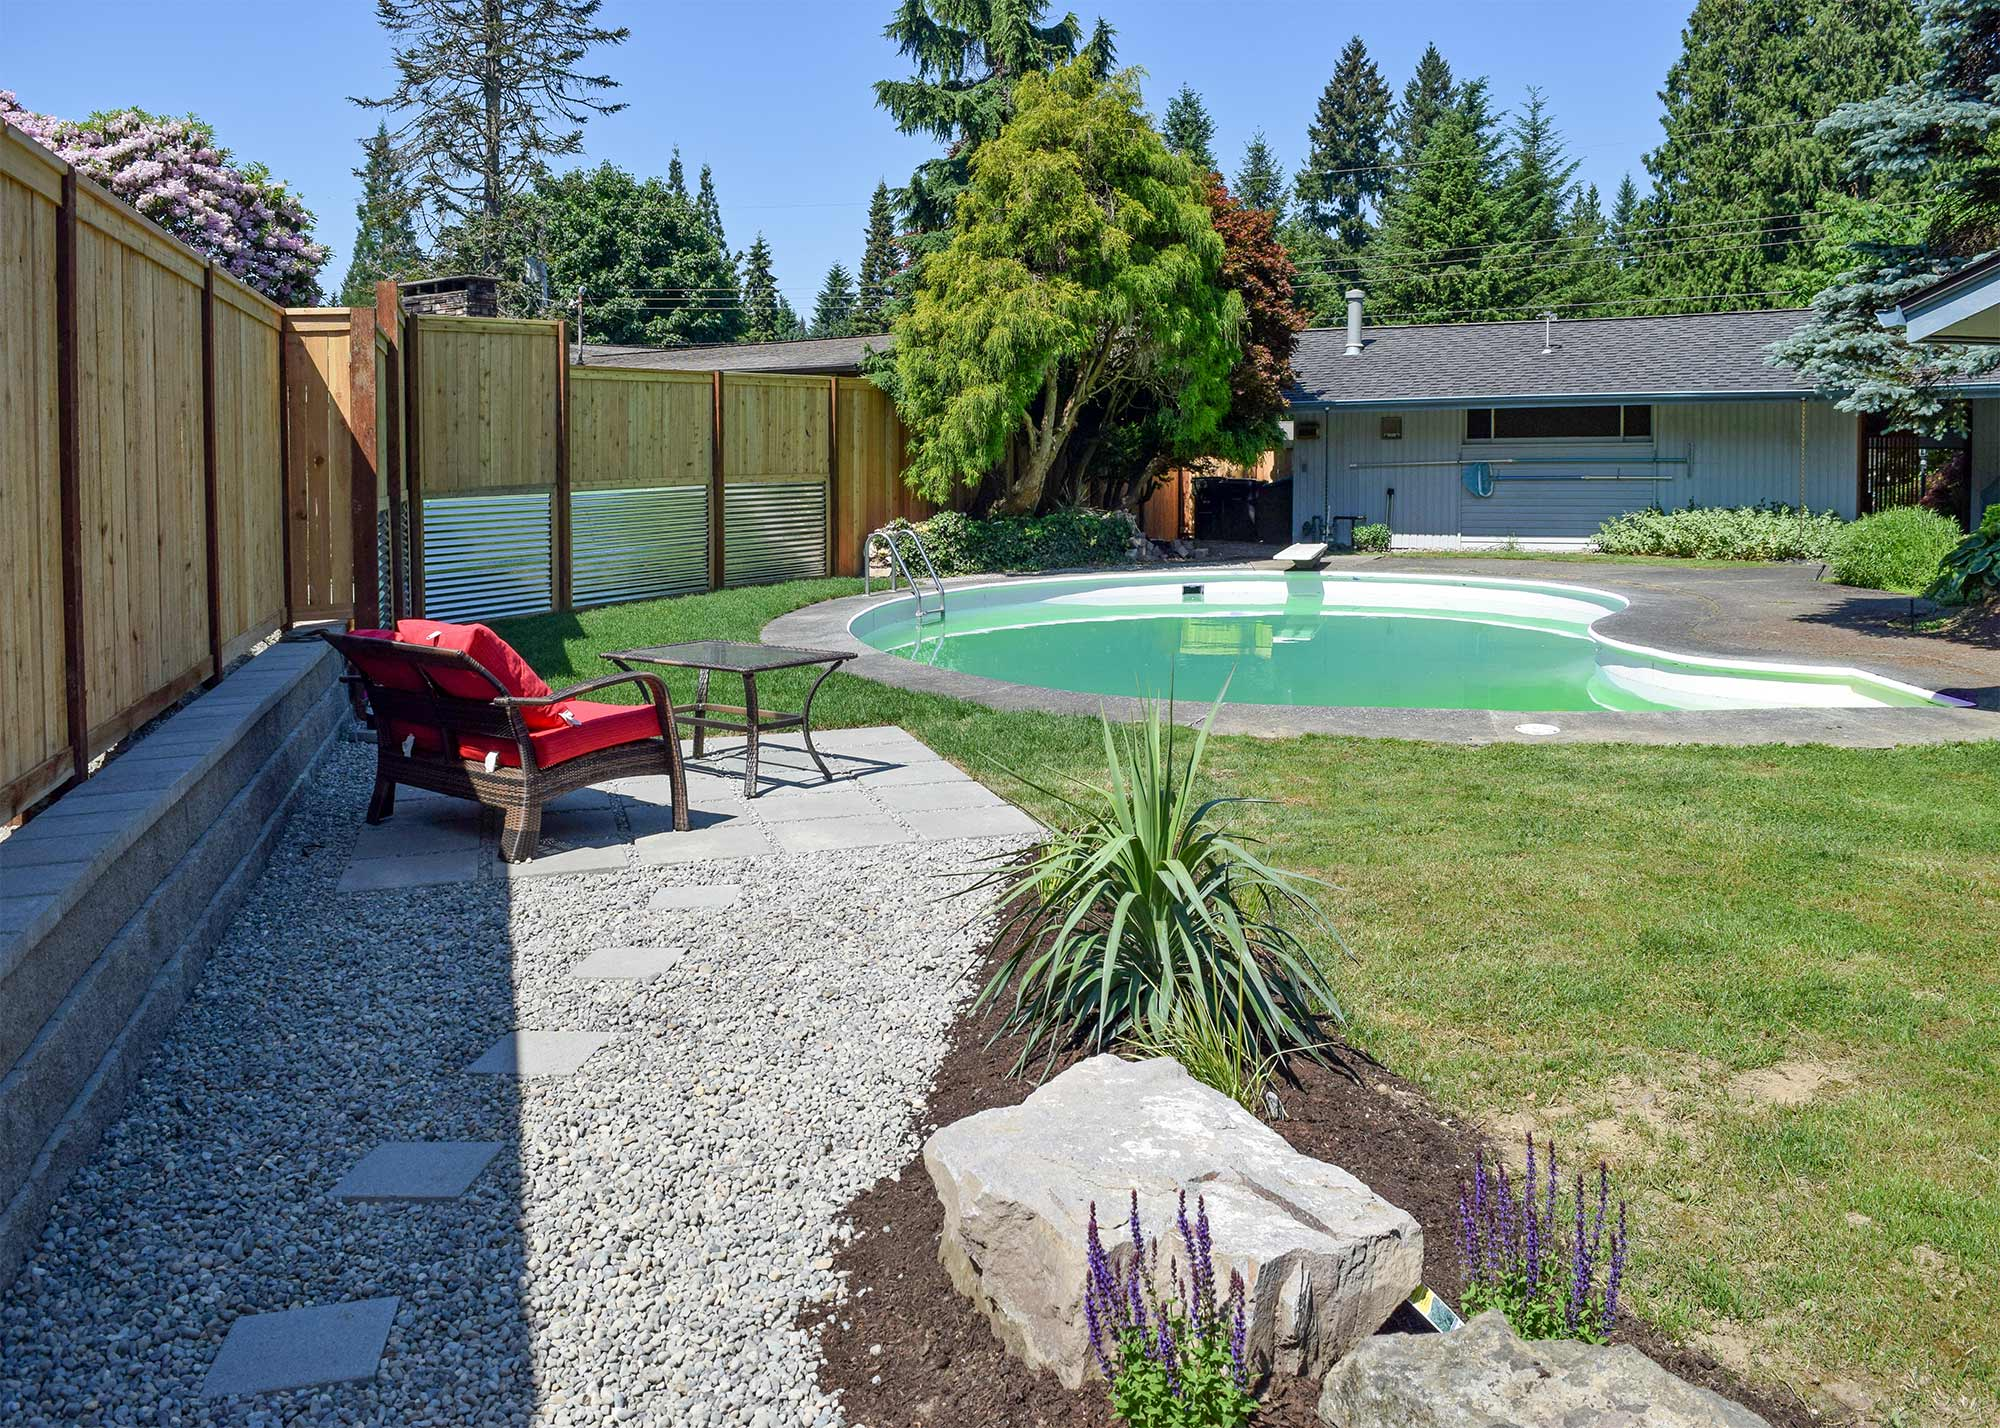 south olympia poolside transformation ajb landscaping u0026 fence